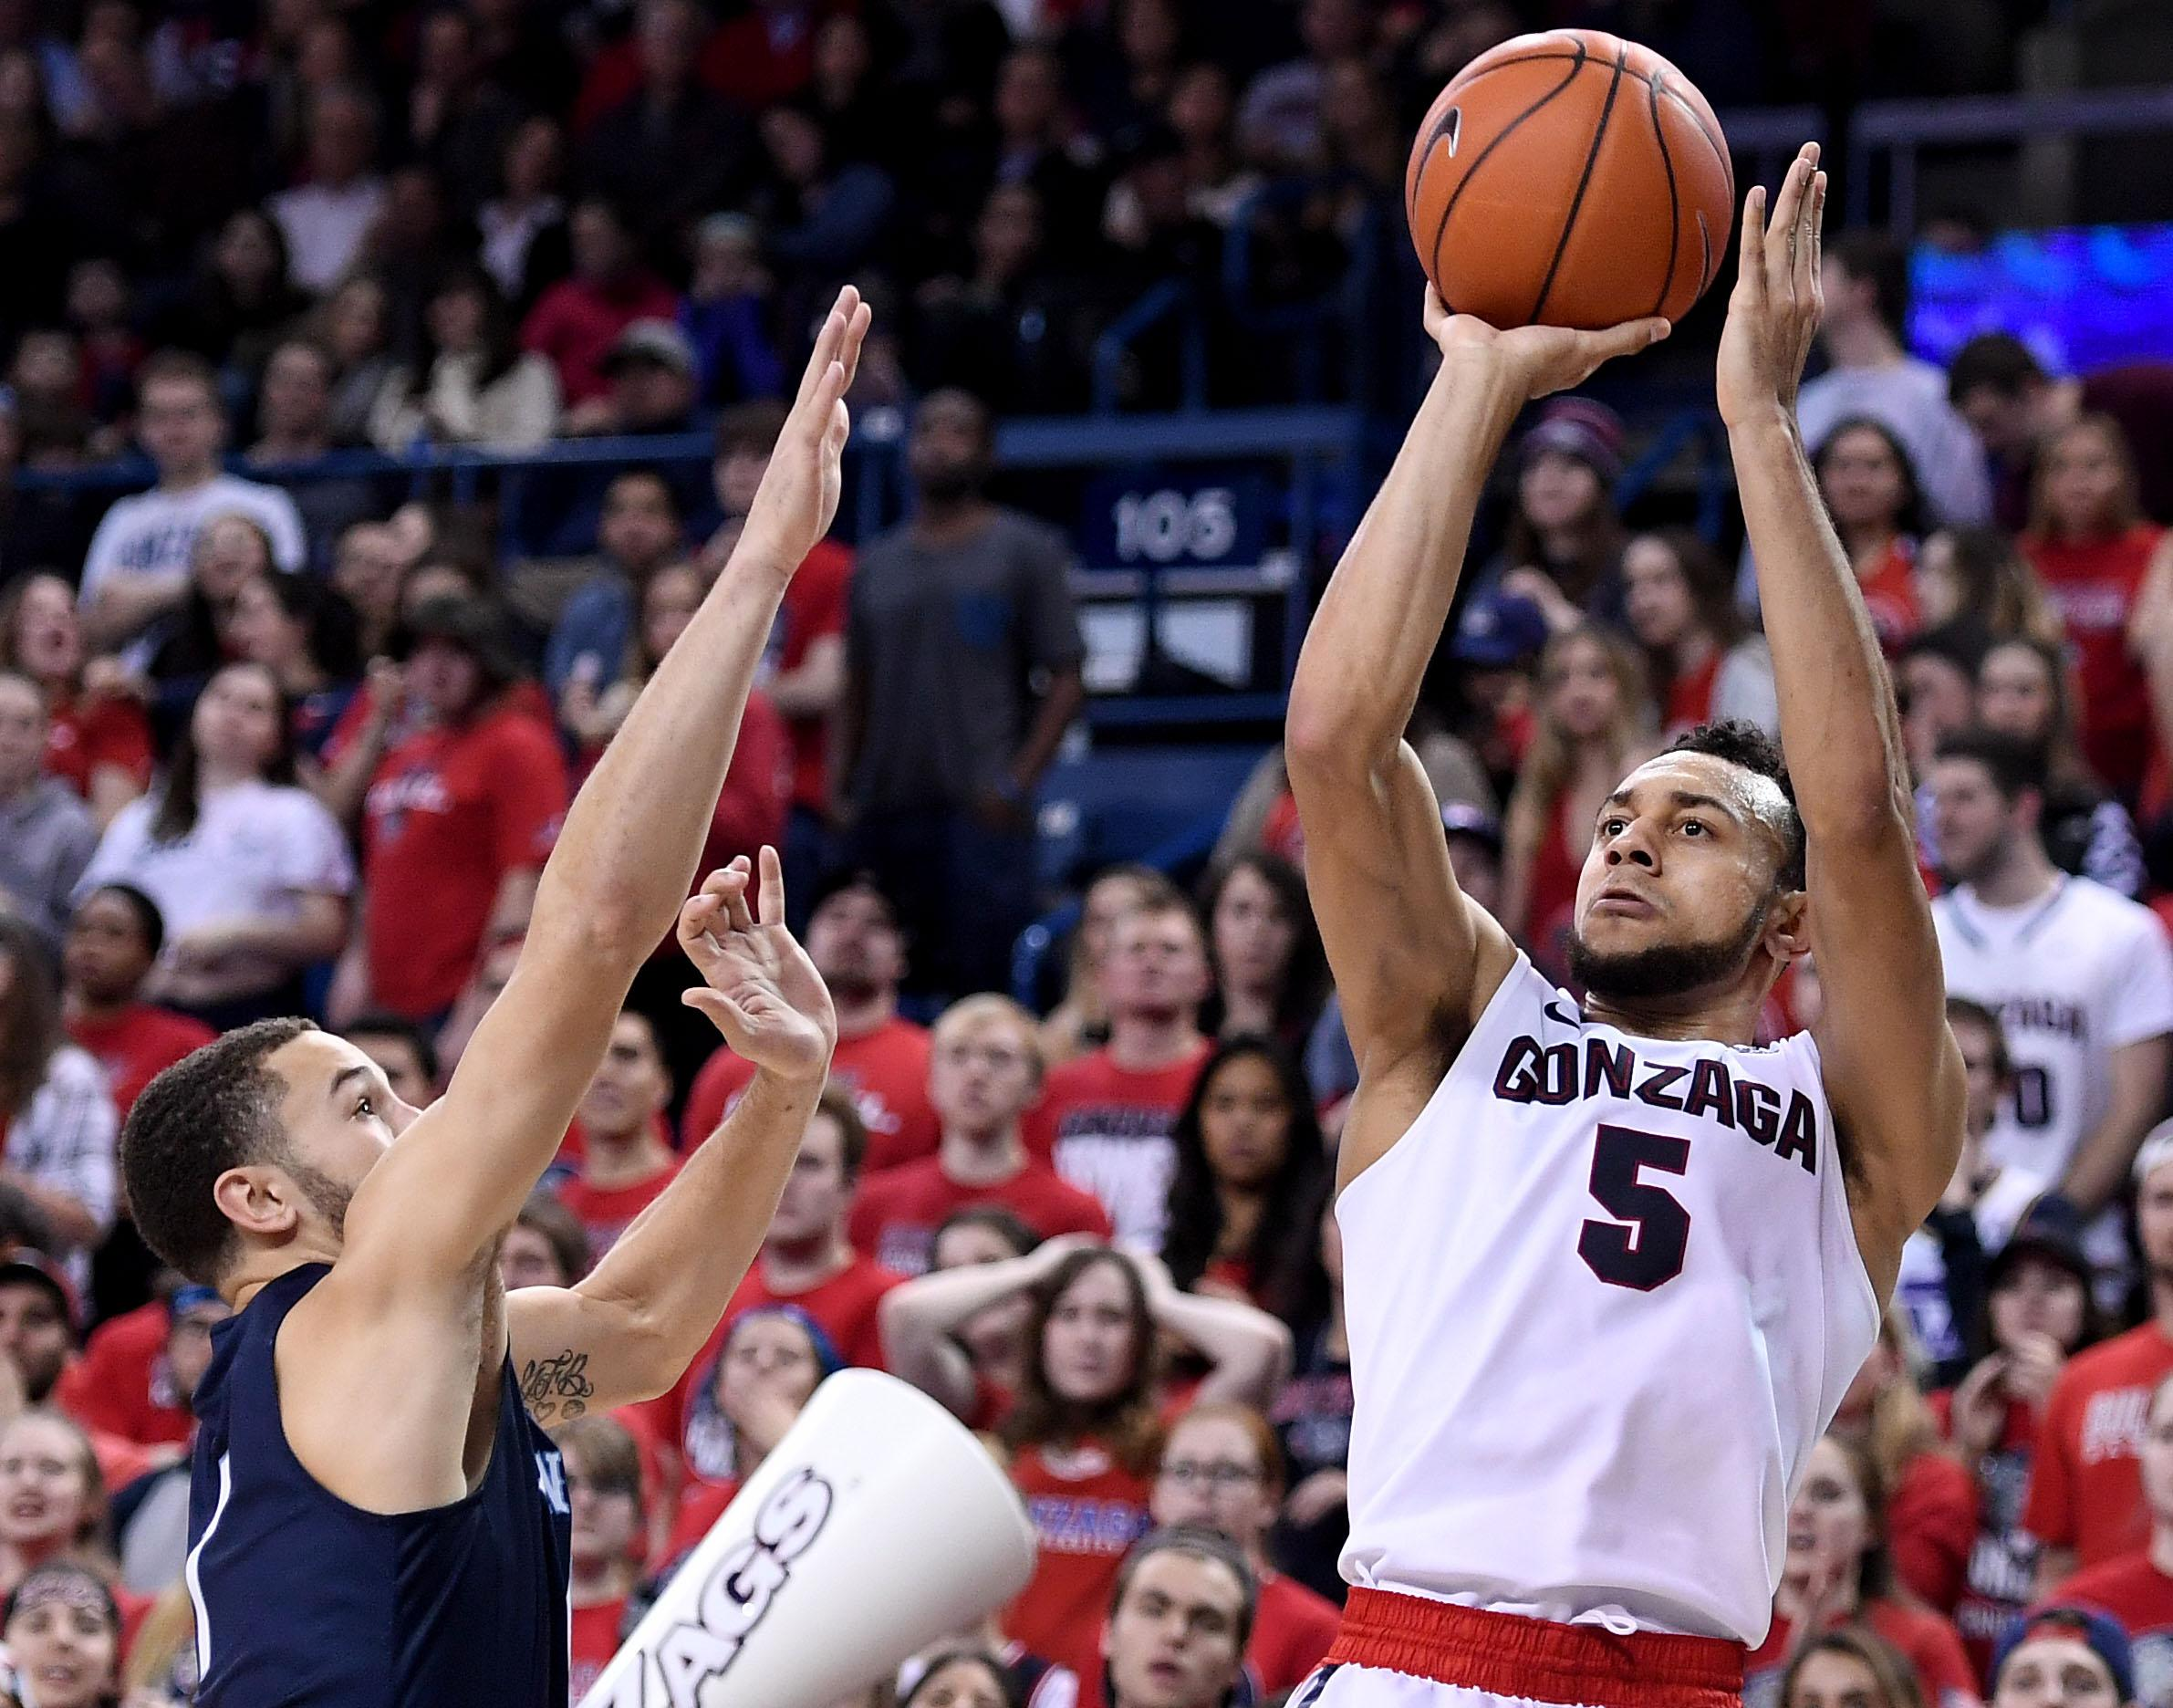 Gonzaga Bulldogs Basketball Player Nigel Williams-Goss